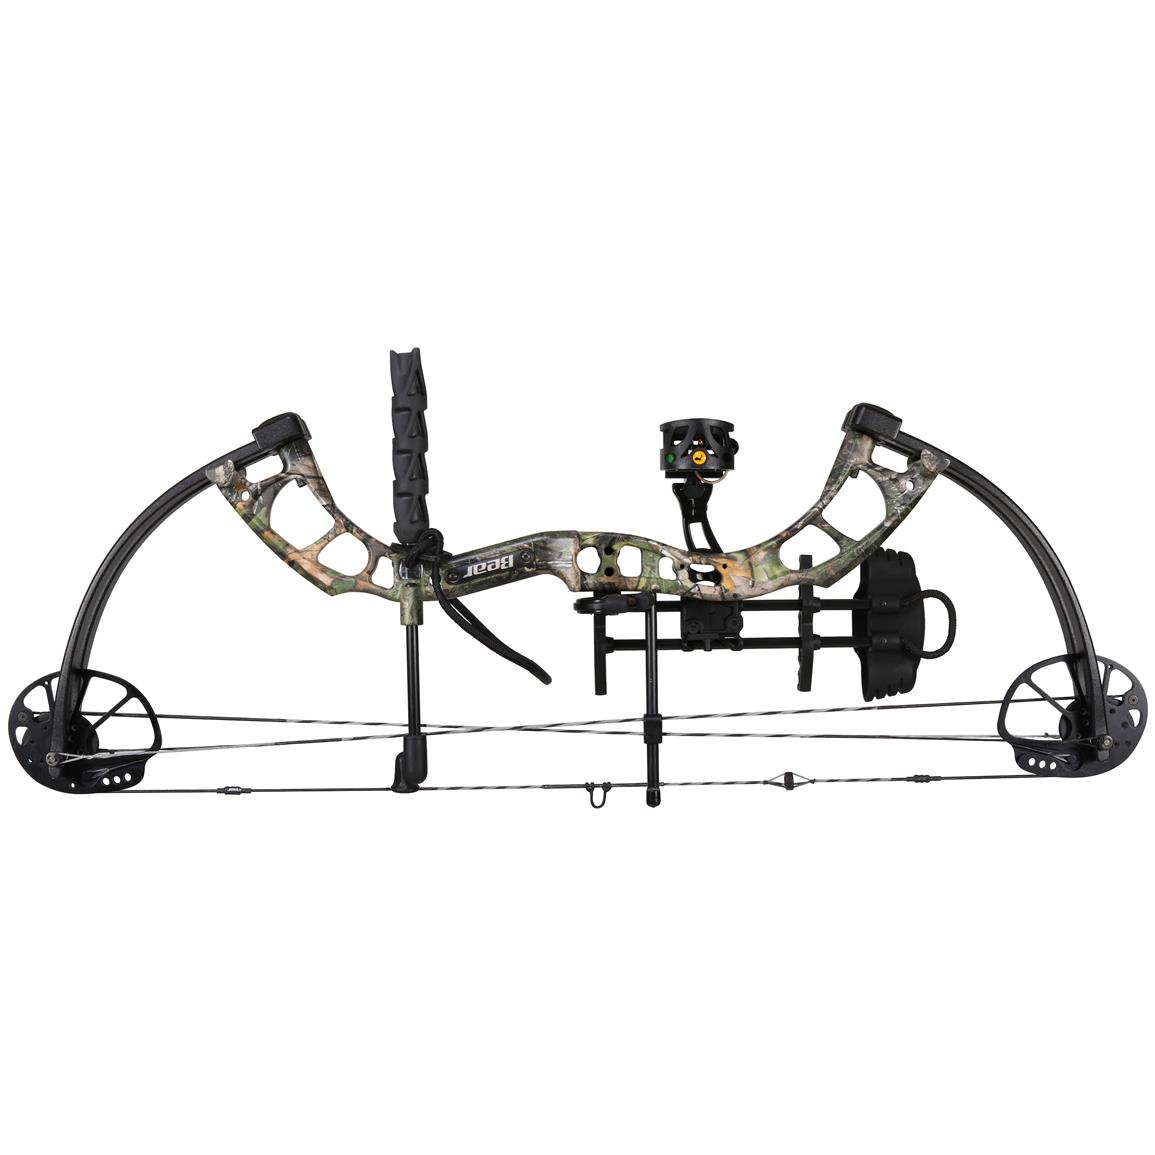 Bear Archery Cruzer Ready to Hunt Compound Bow, Realtree All Purpose